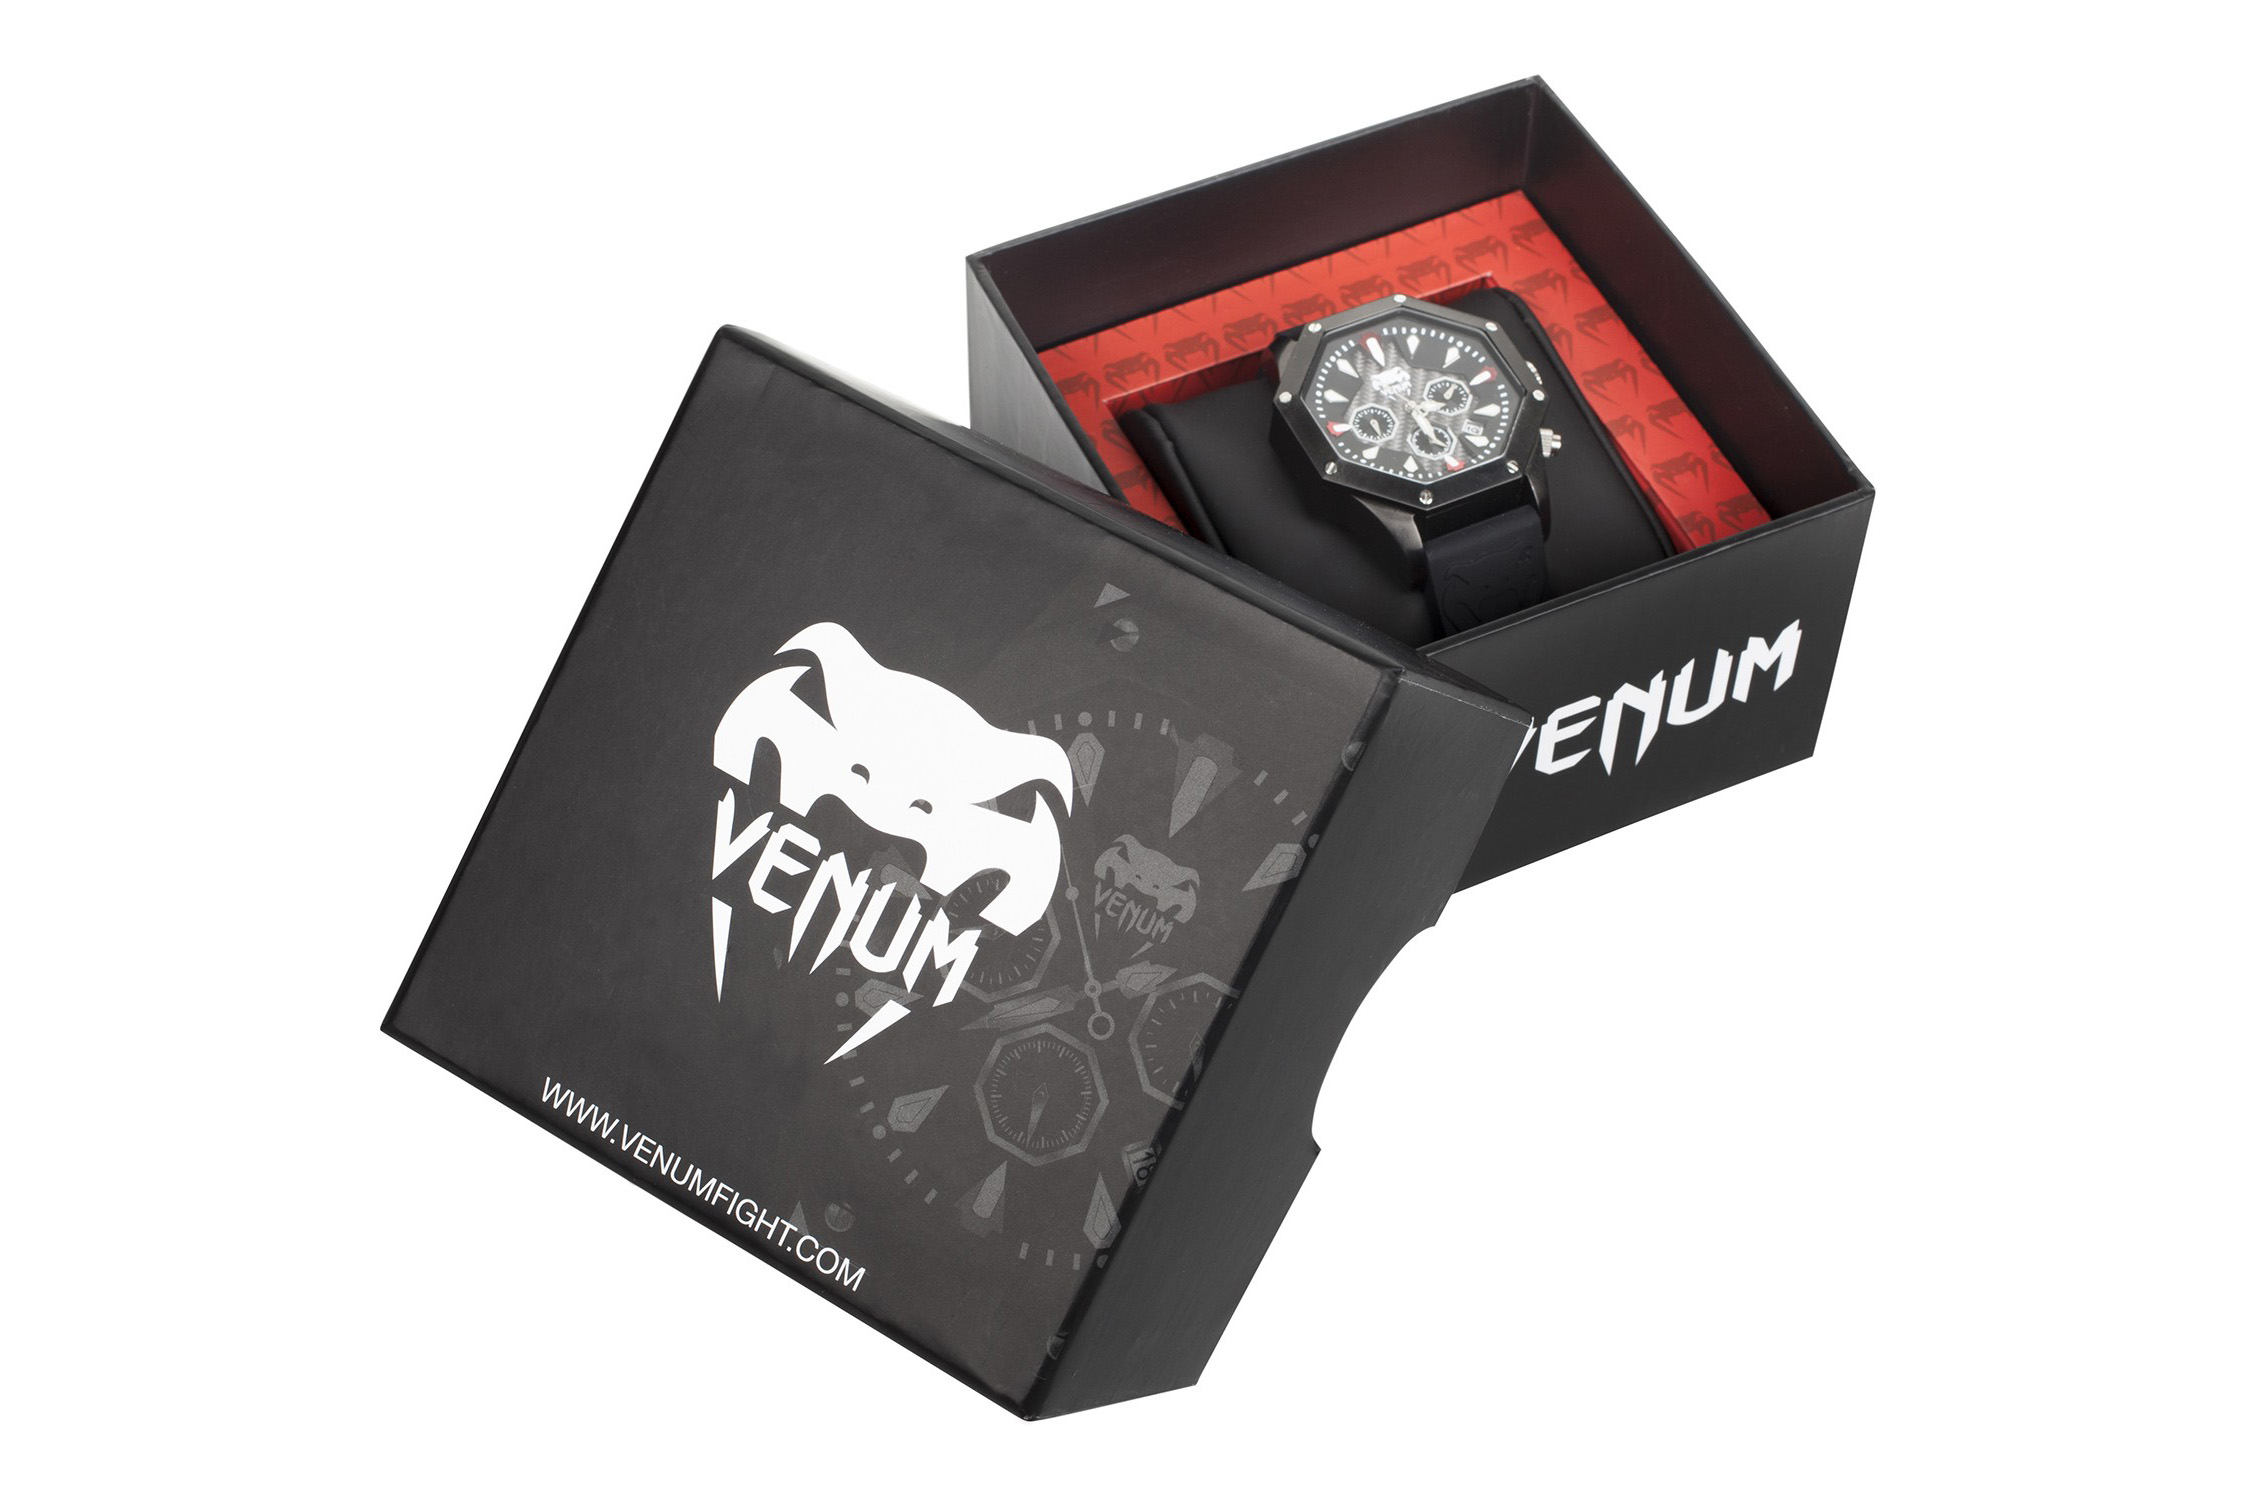 venum-elite-steel-watch (1)